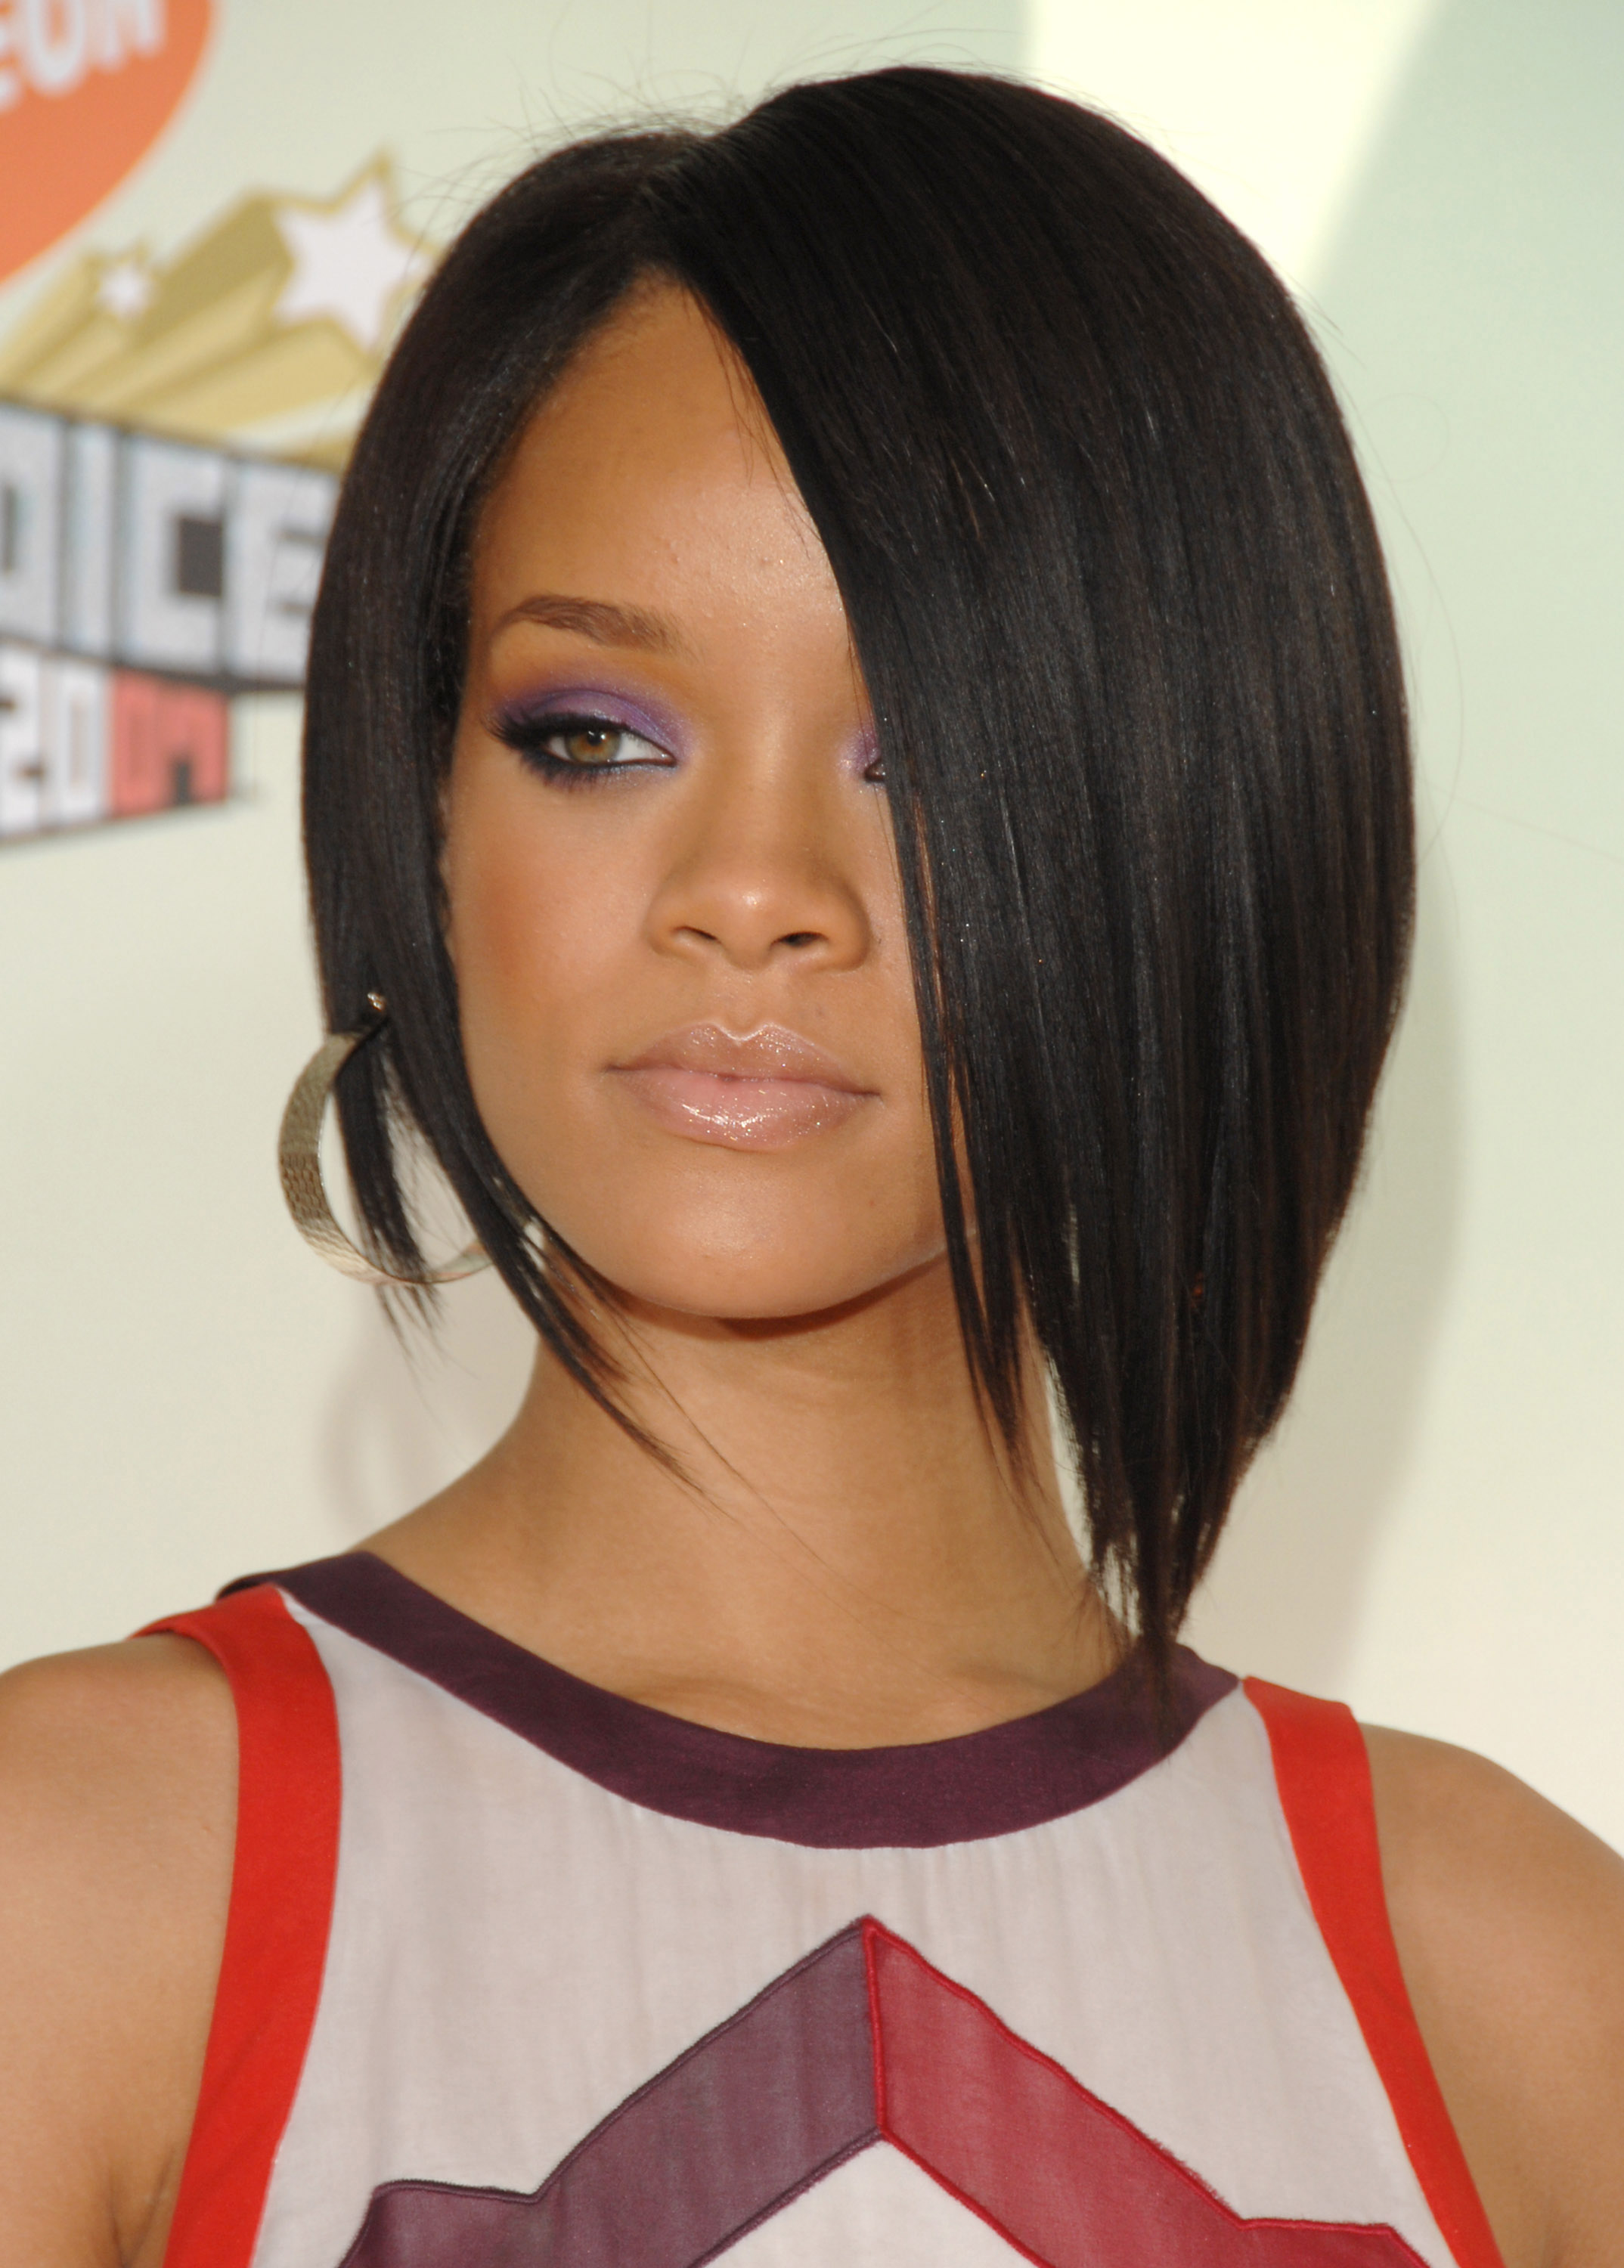 Best Short Hairstyles For Black Women Black Hairstyles - Short hairstyle bob cut